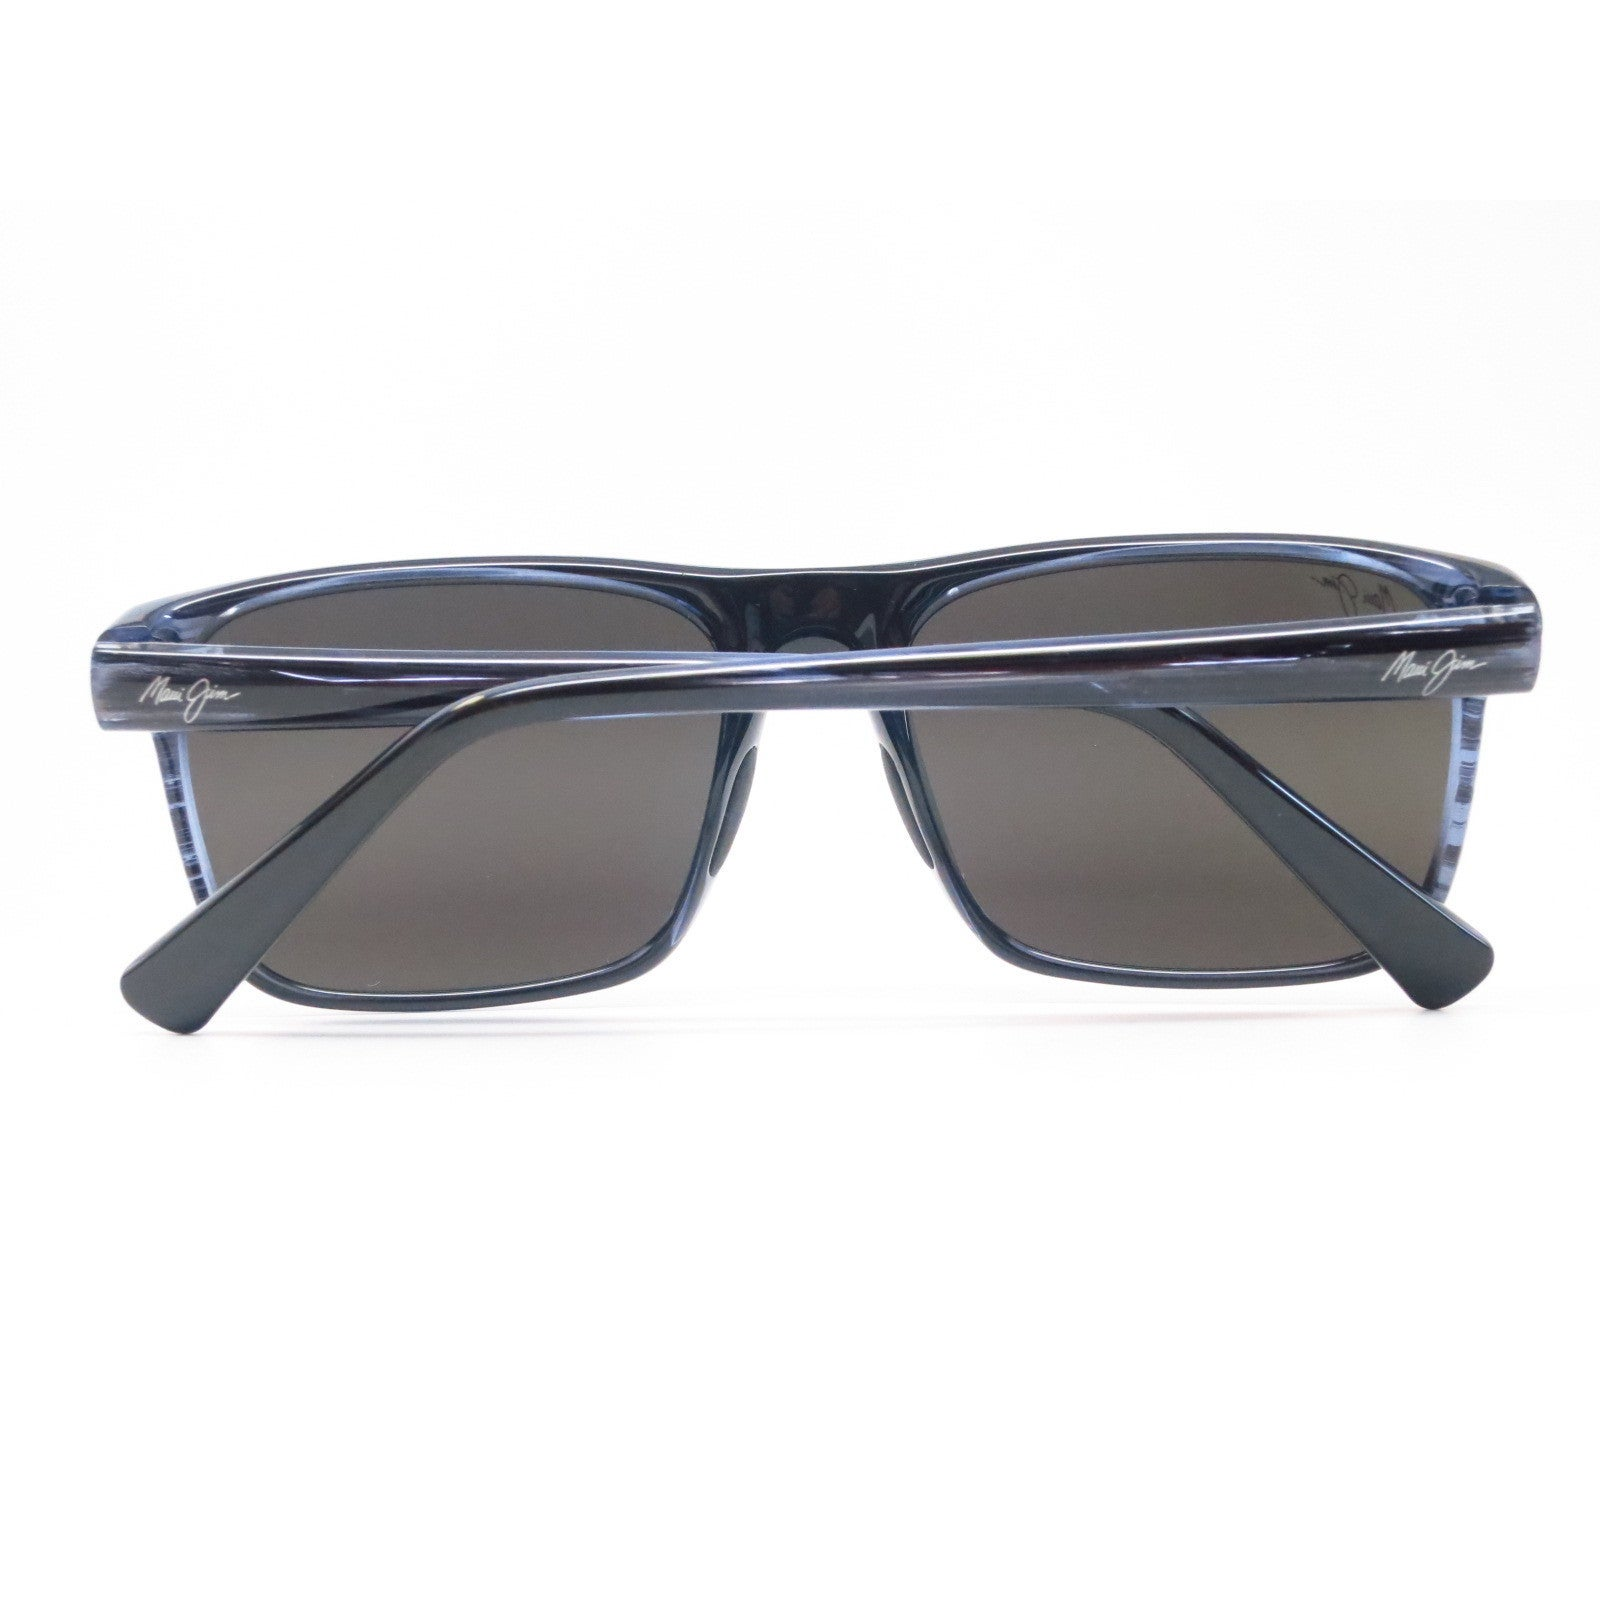 fac968b72bc Shop Maui Jim 705-03S Flat Island Blue Stripe Frame Polarized Neutral Grey  58mm Lens Sunglasses - Free Shipping Today - Overstock - 11416803